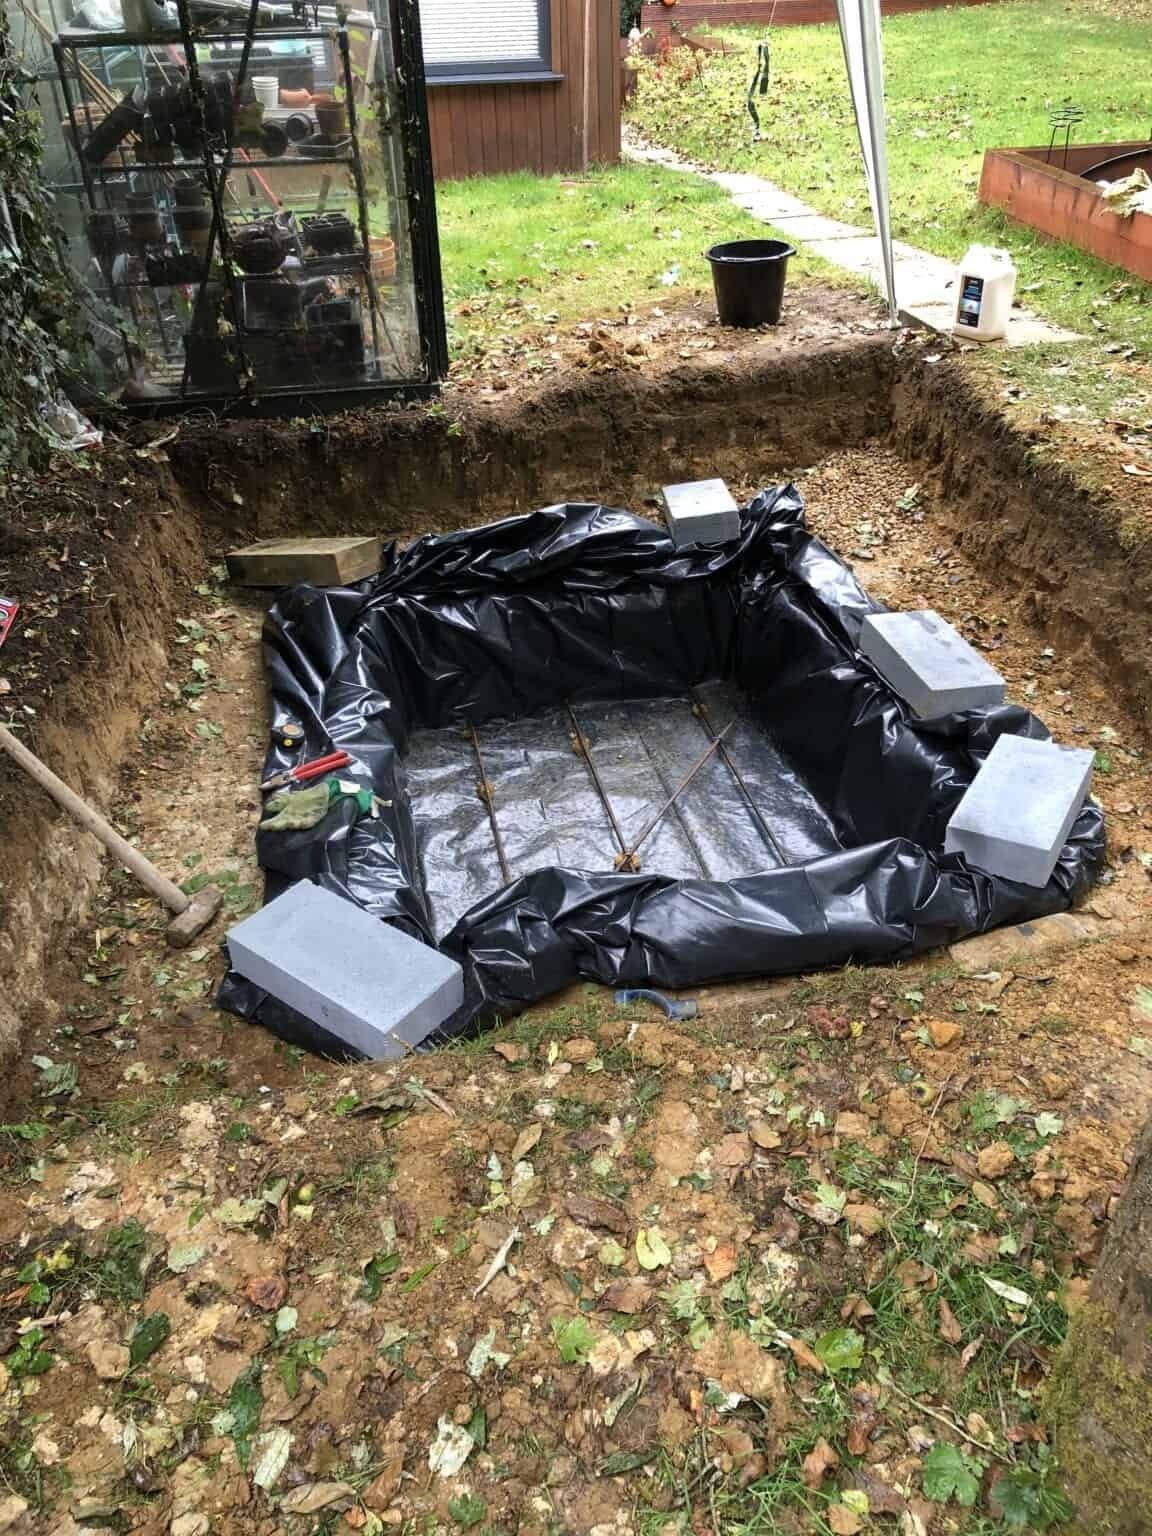 How to Build Your Own DIY Hot Tub - It's Easier Than You Think!